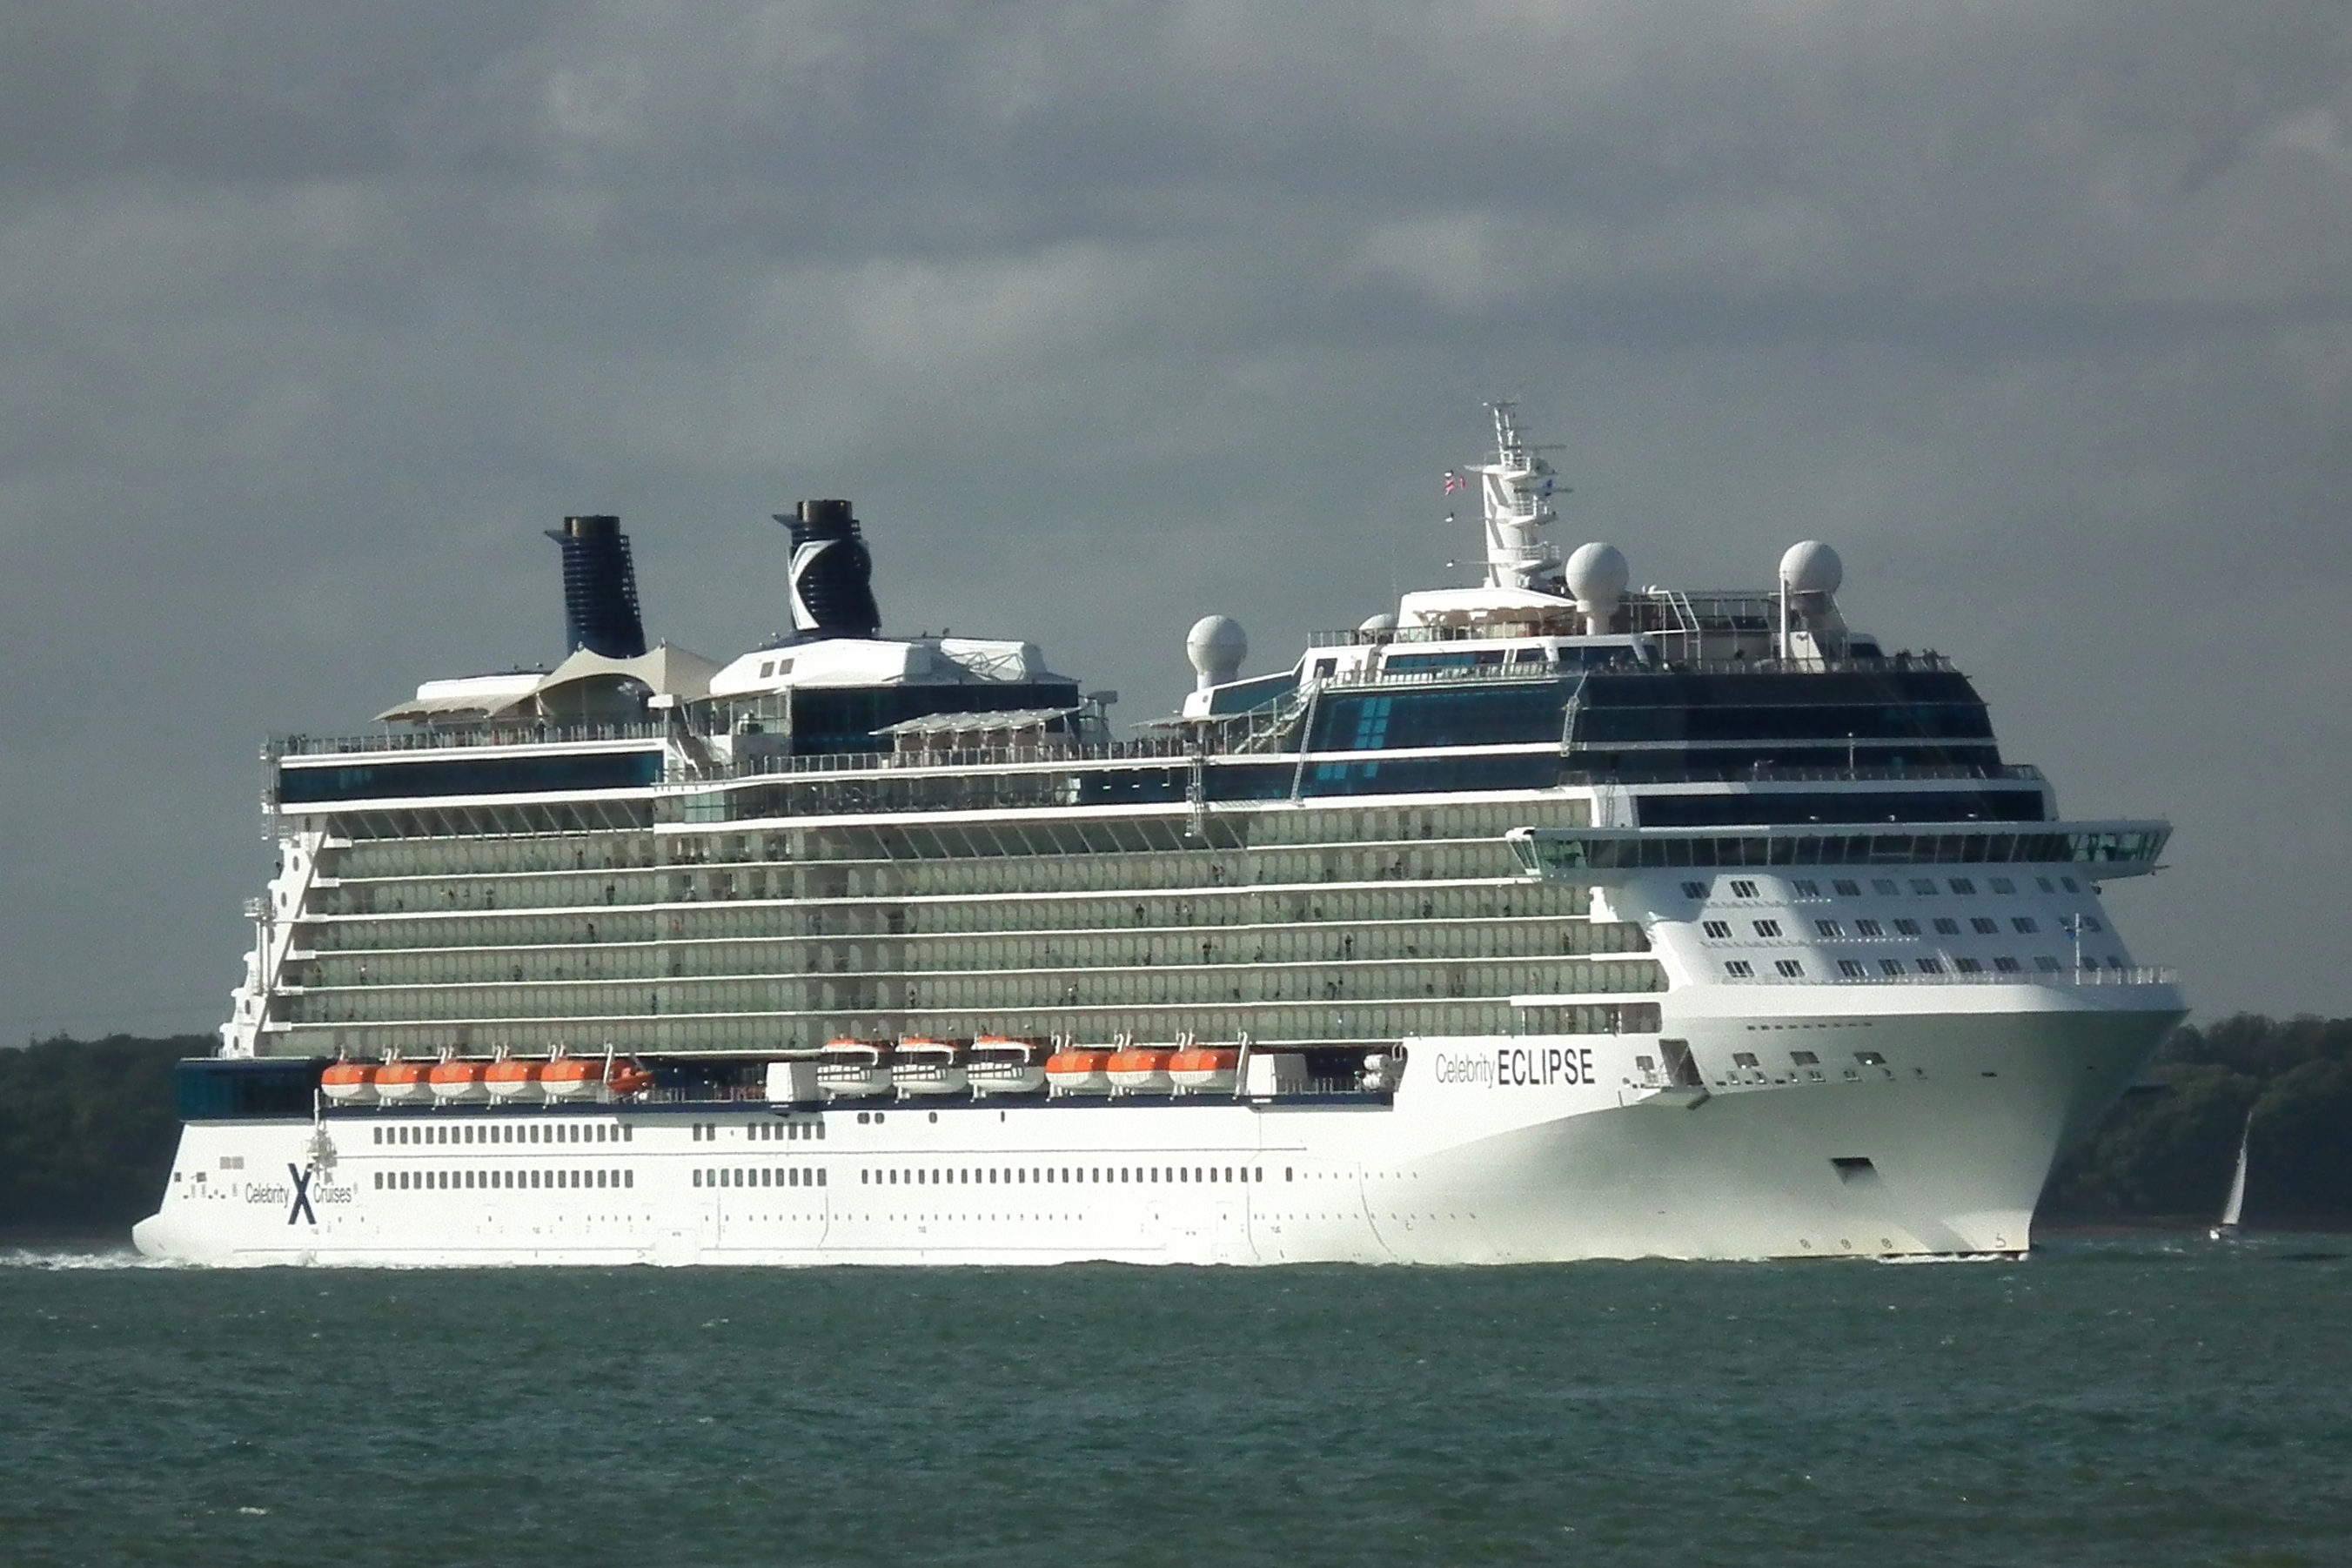 Learn More About the Celebrity Eclipse Cruise Ship